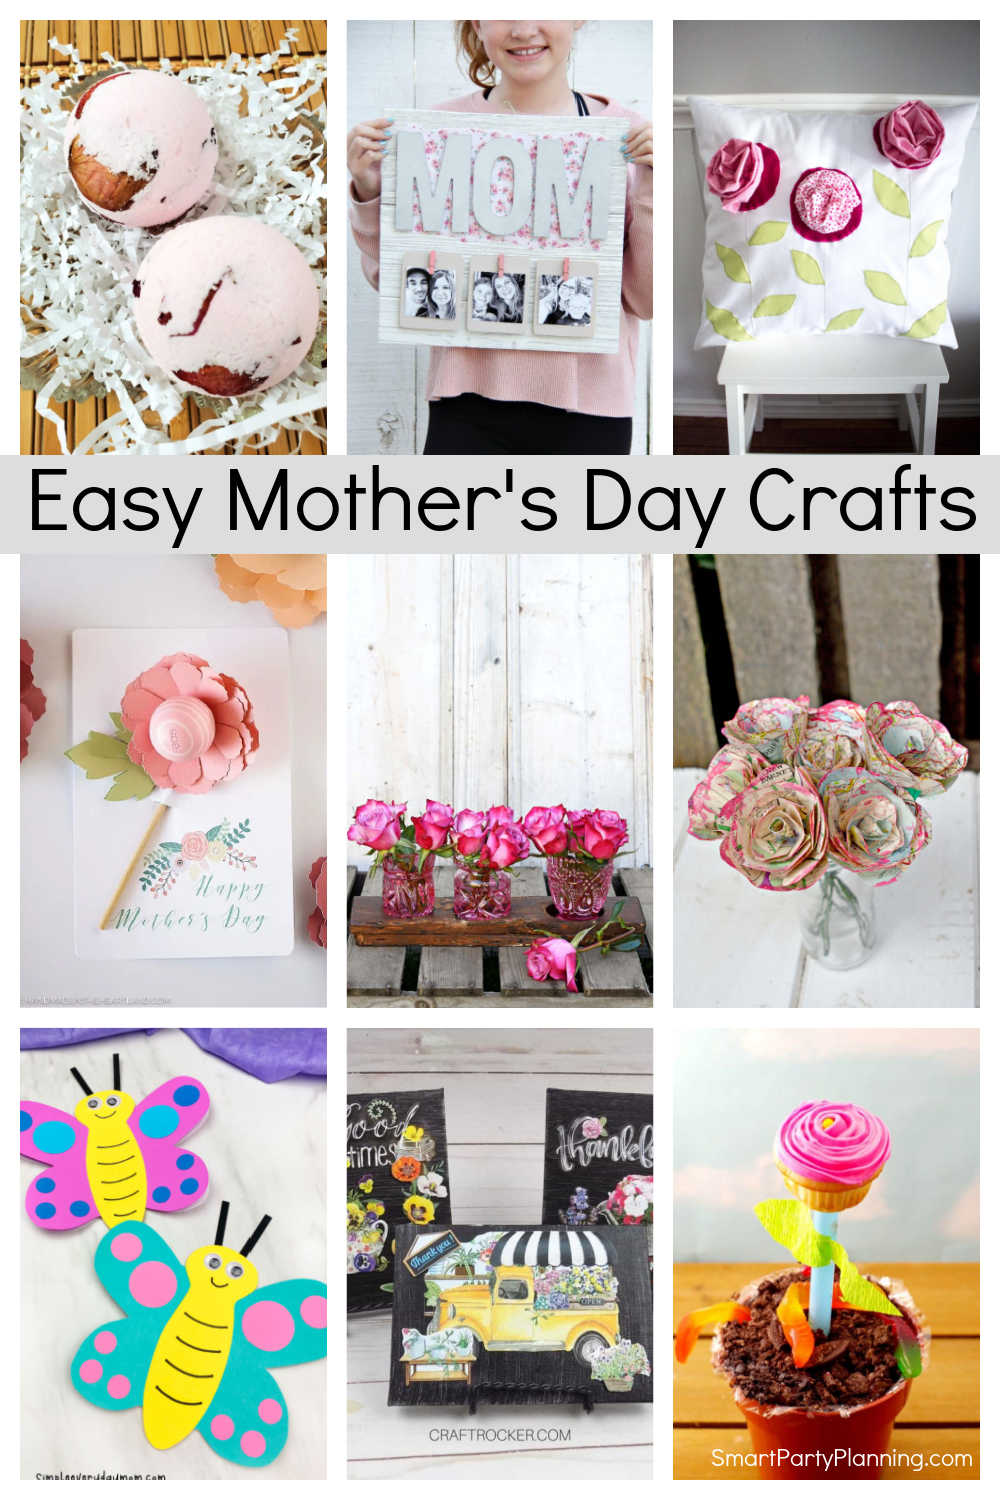 Easy Mother's Day Crafts Ideas